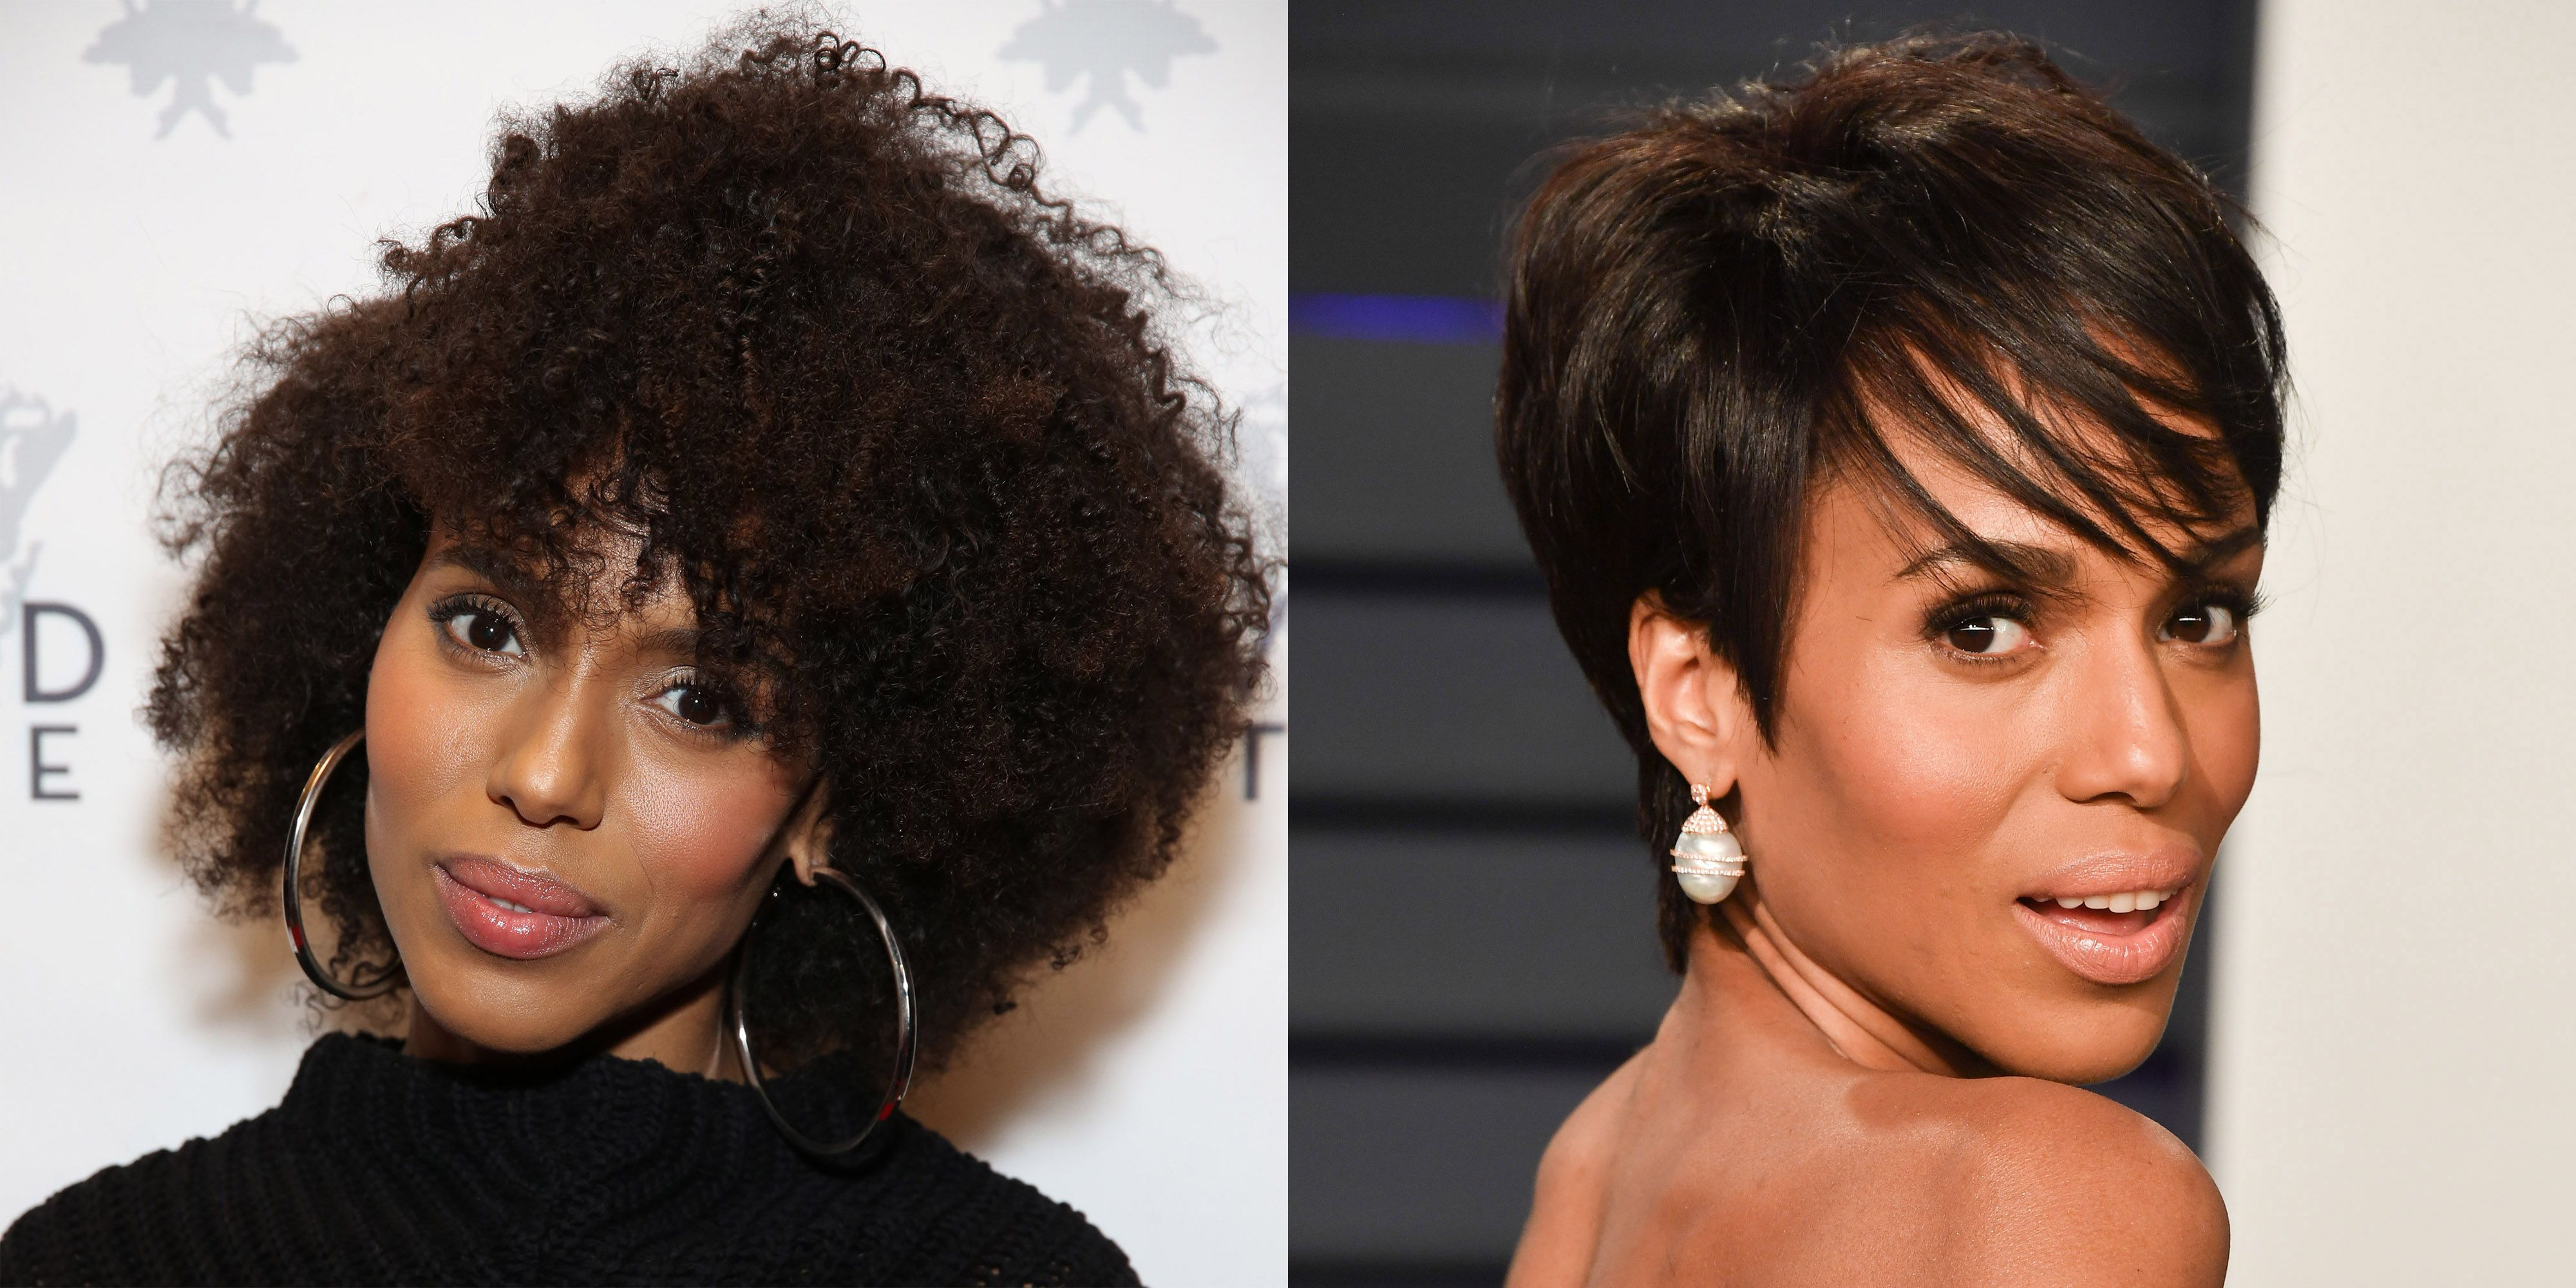 52 Best Celebrity Haircuts Celebrity Hair Makeovers Hairstyle Pictures